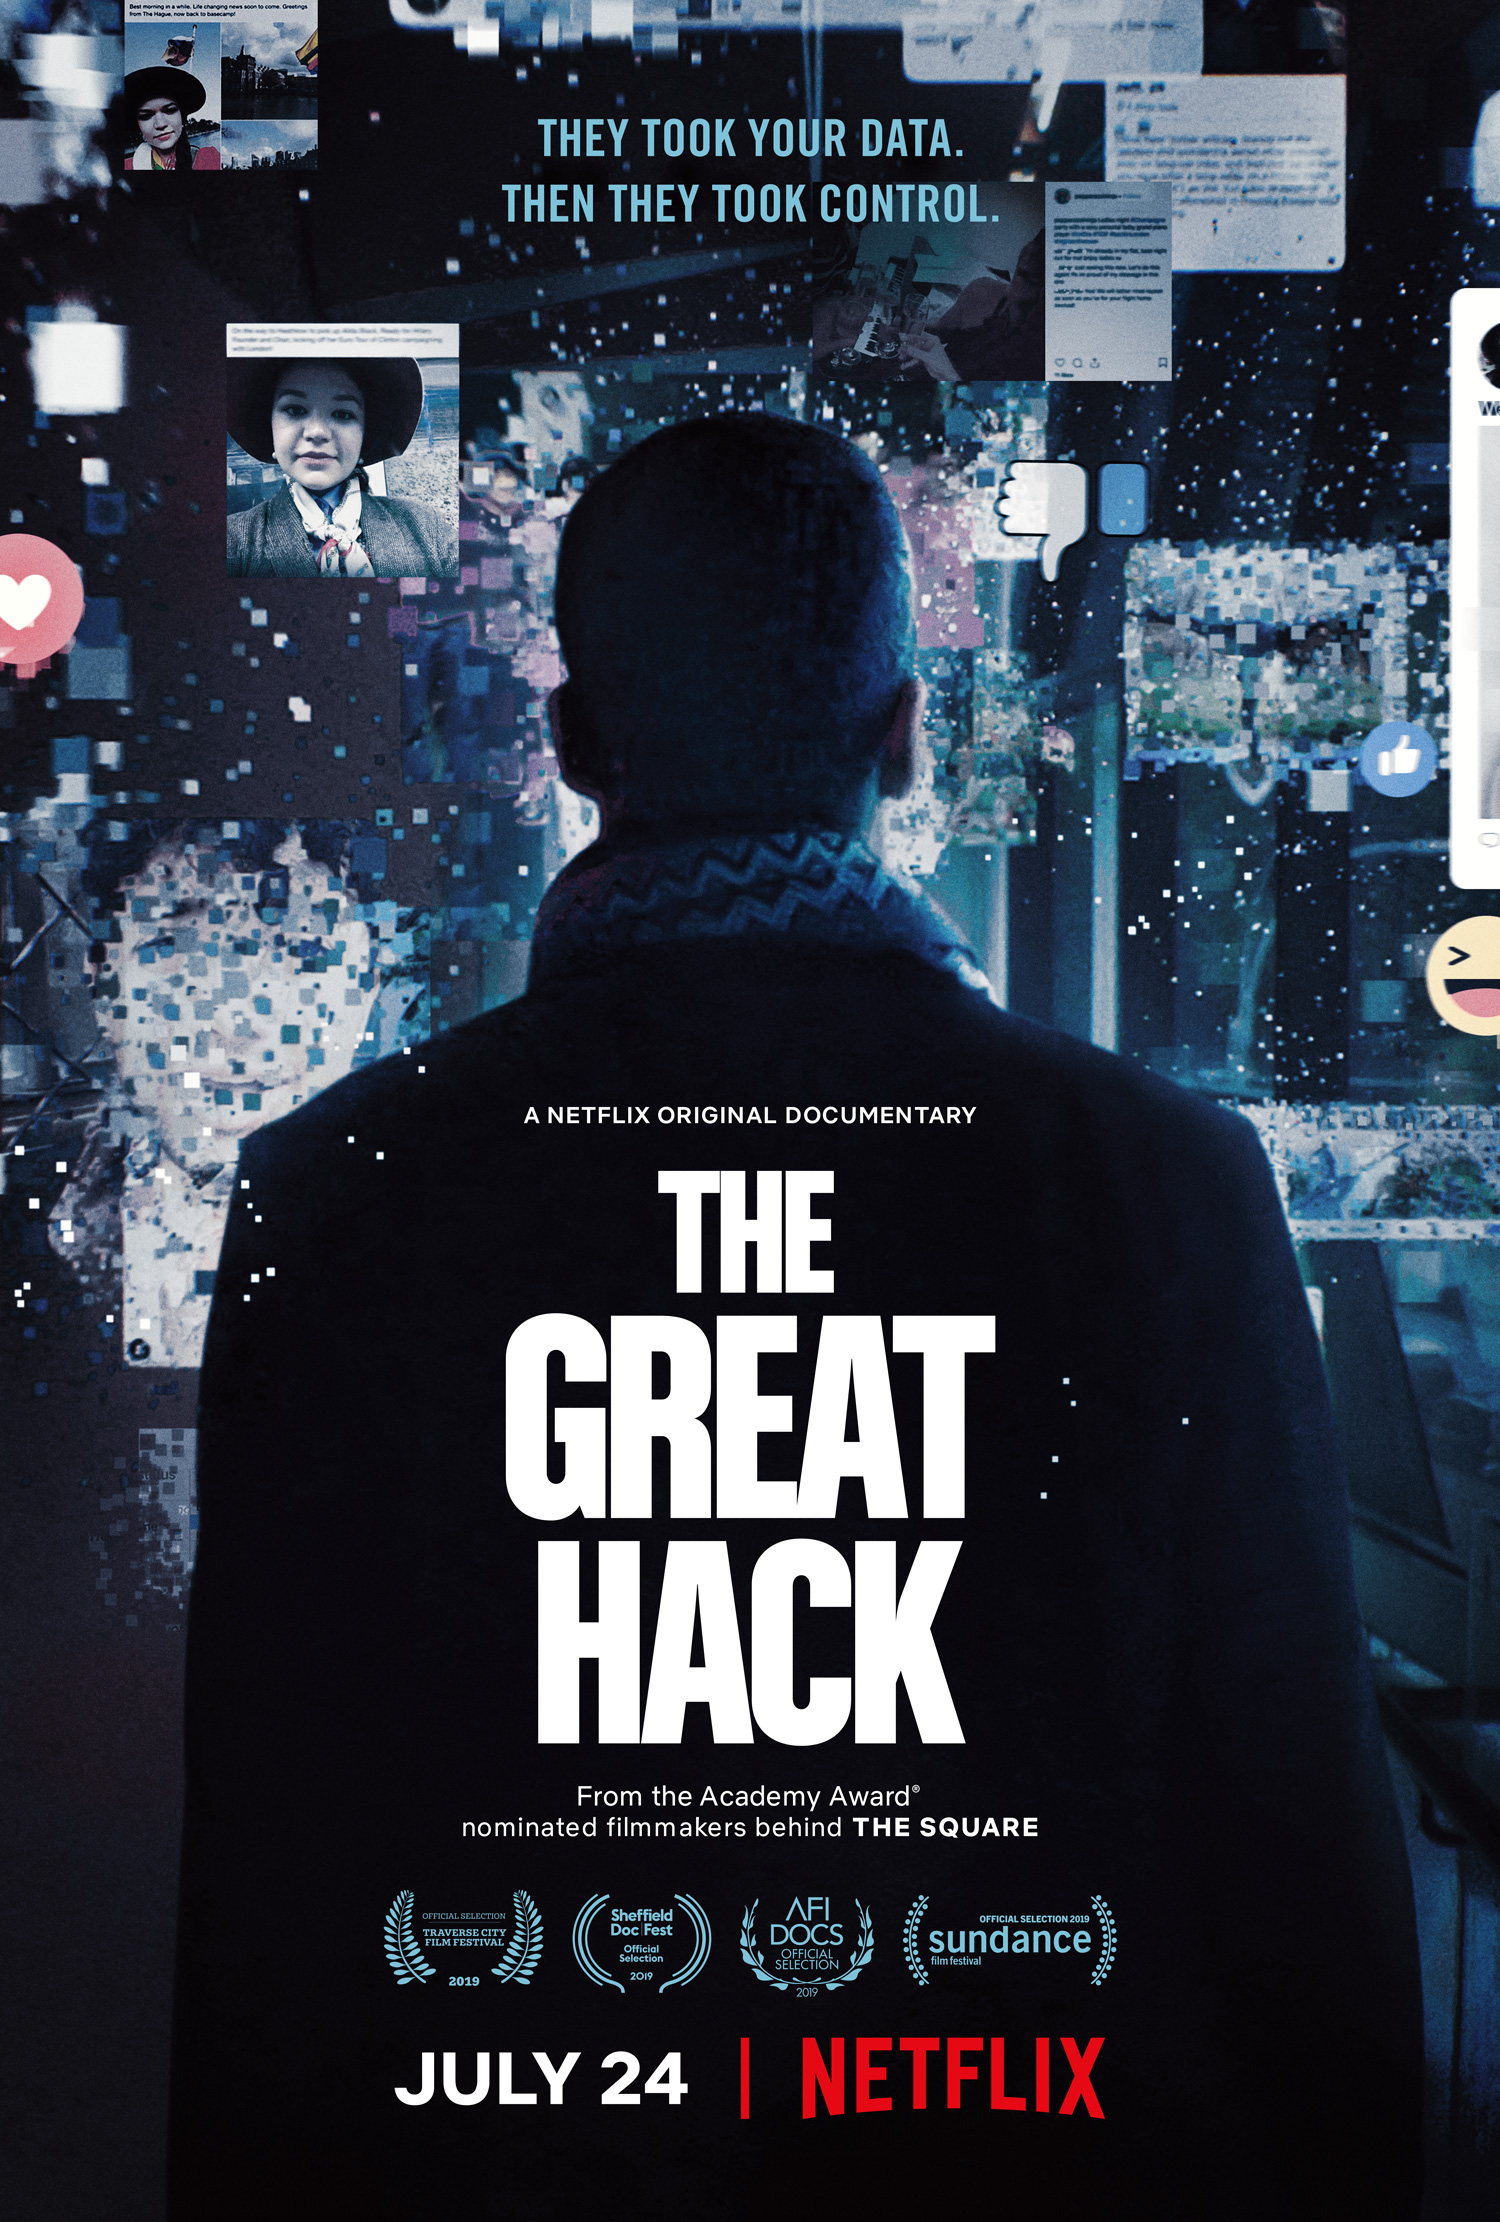 The Great Hack 2019 Imdb